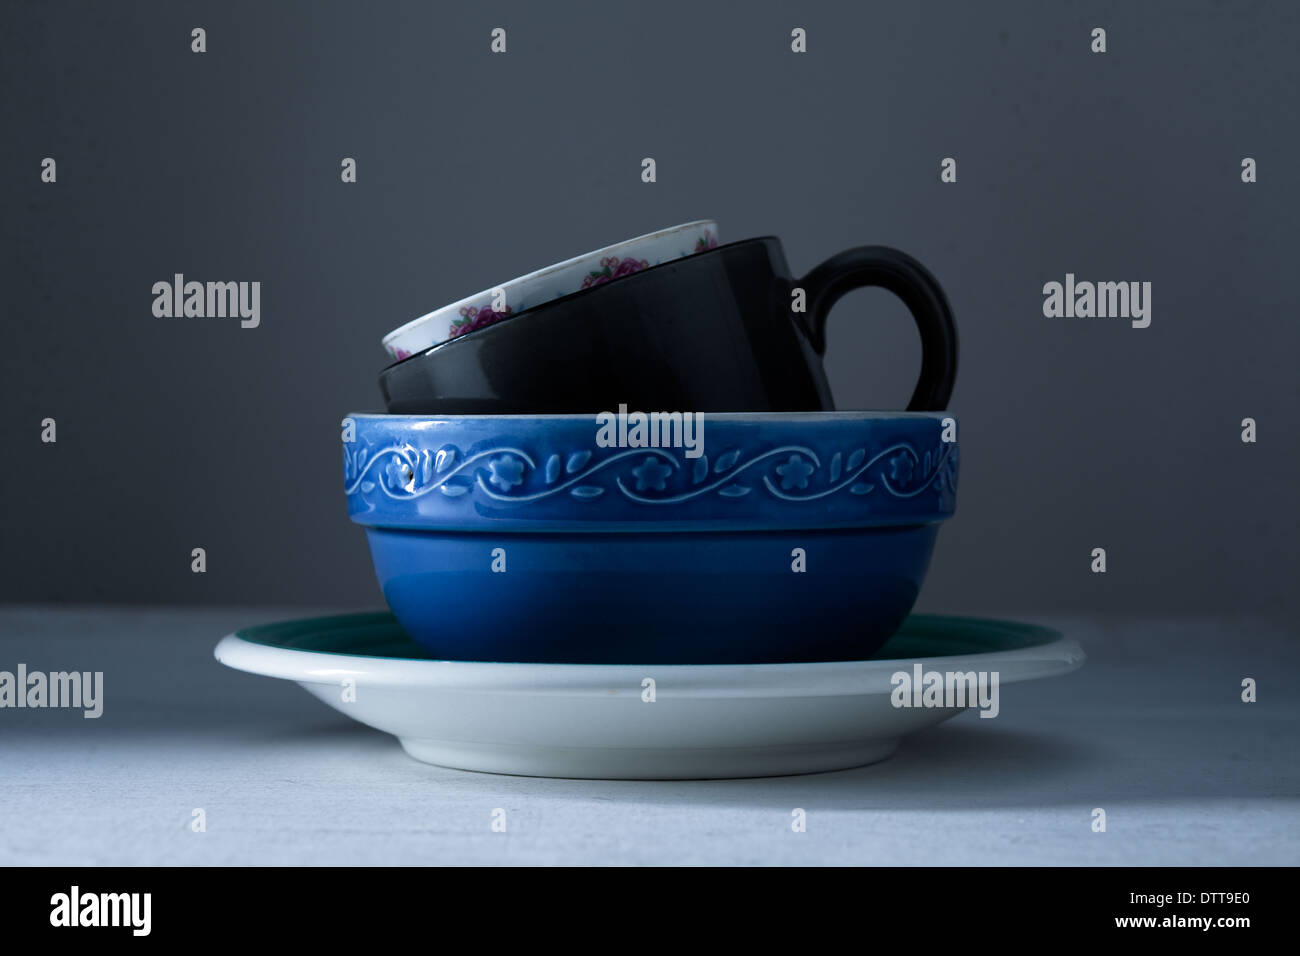 Stacked Cups on Gray Background - Stock Image